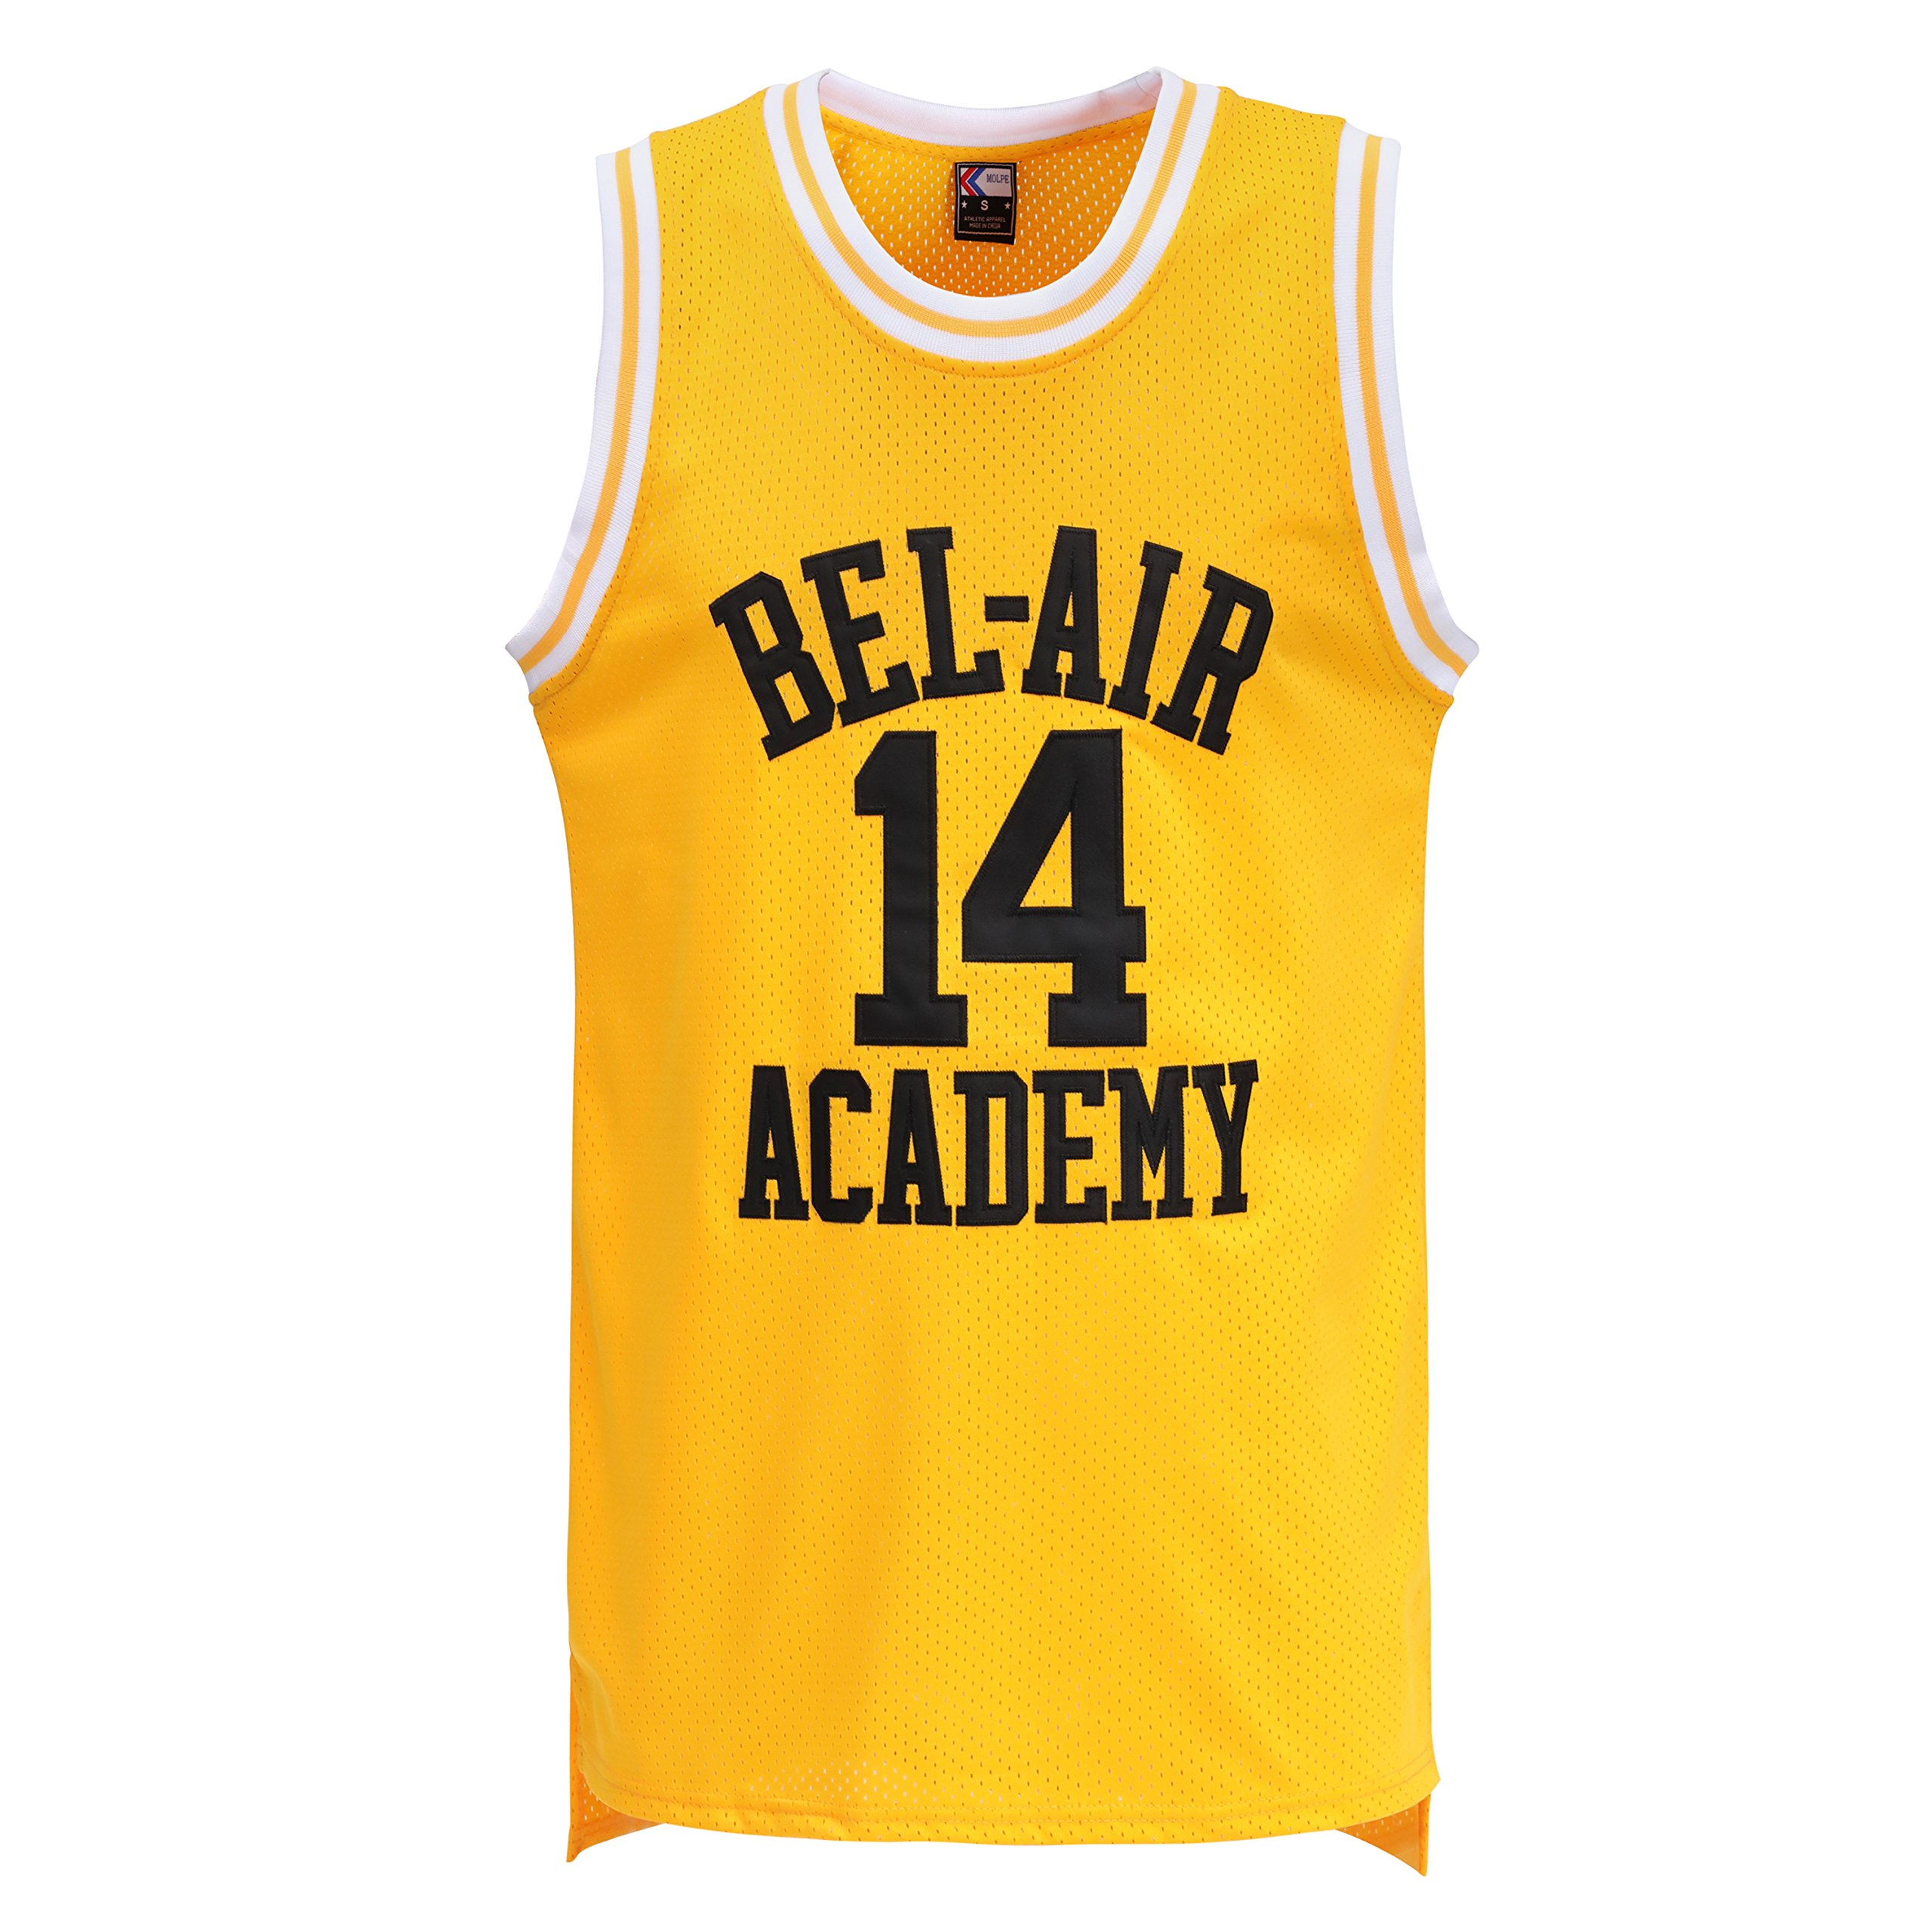 Stitched Letters and Numbers 90S Hip Hop Clothing MOLPE Mens 96 Tournament Shootout Jersey Basketball Jersey S-XXXL Black